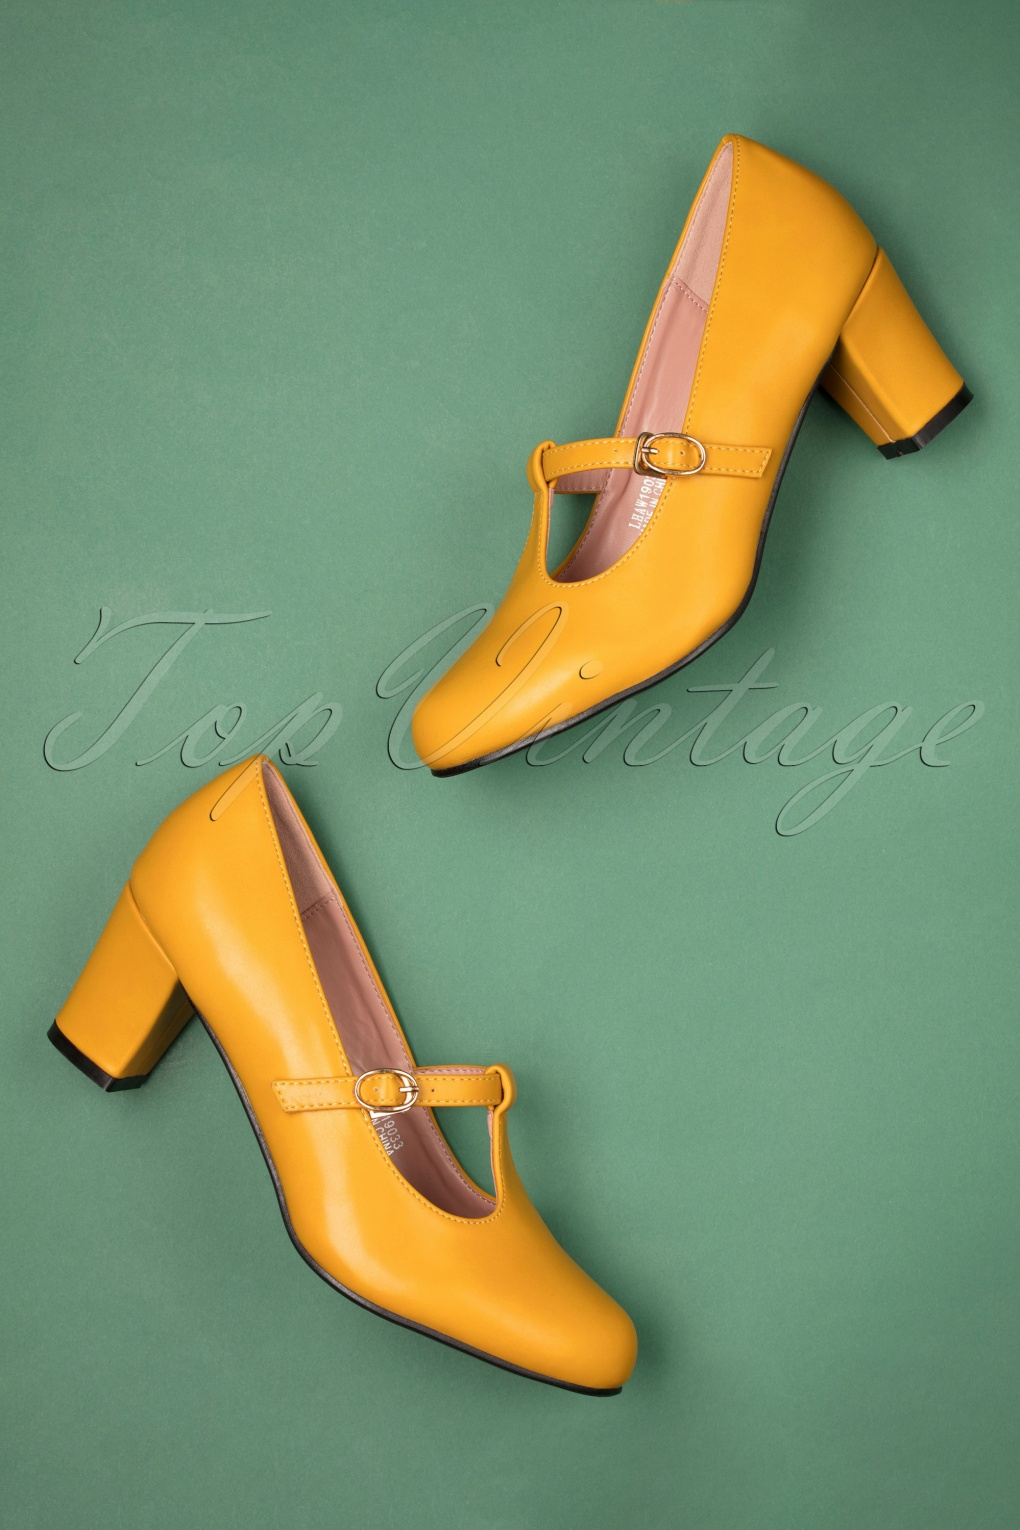 Vintage Style Shoes, Vintage Inspired Shoes 60s Giselle T-Strap Pumps in Mustard £38.30 AT vintagedancer.com